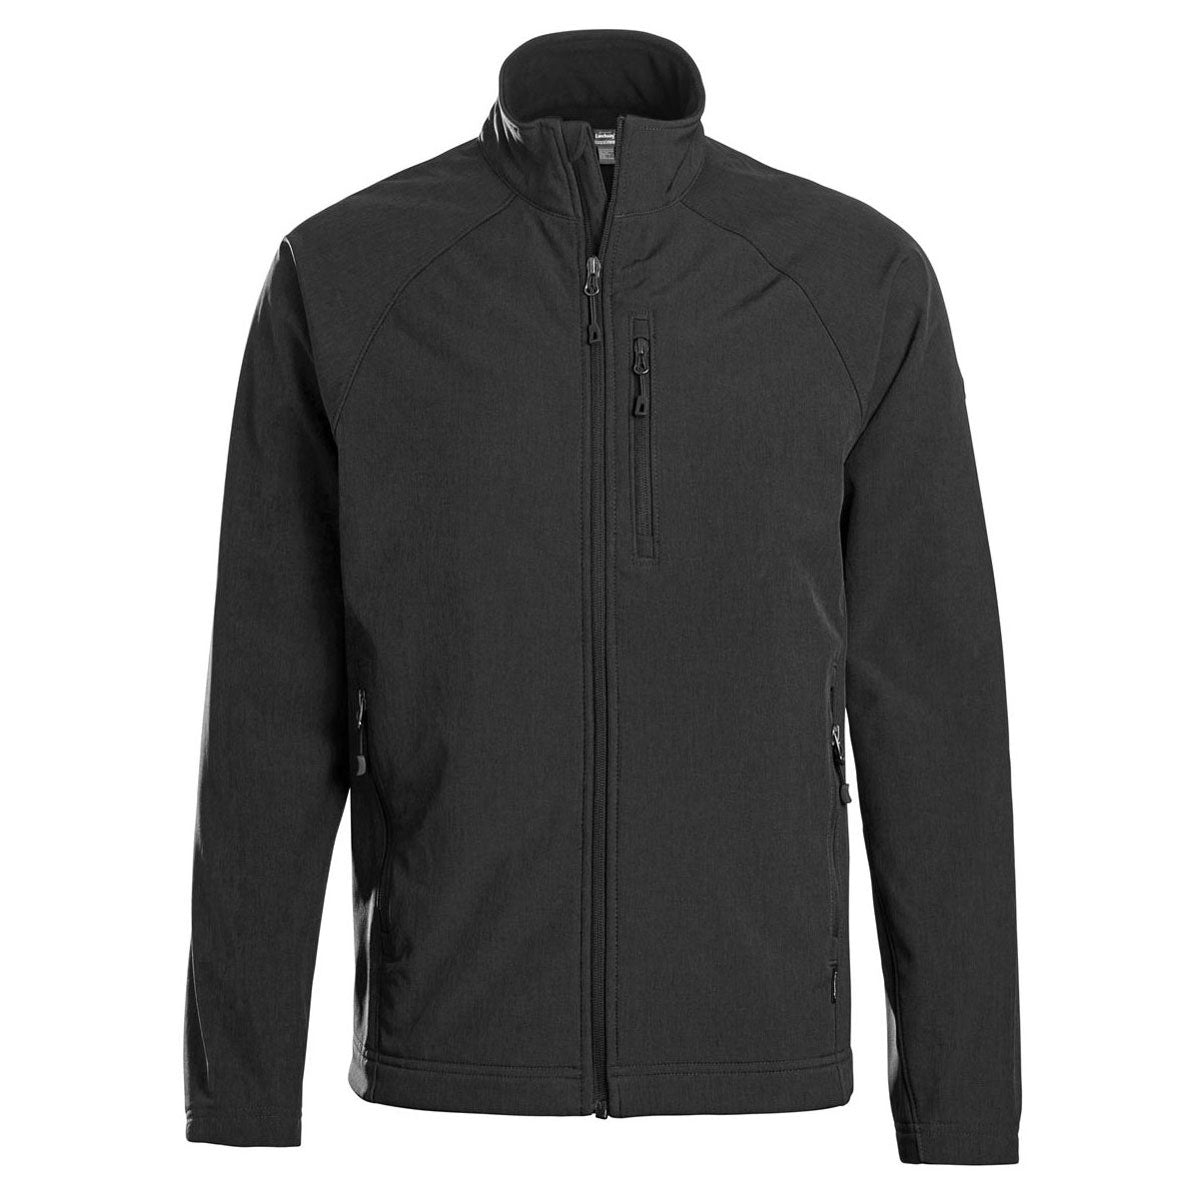 Landway Men's Carbon Matrix Soft Shell Jacket